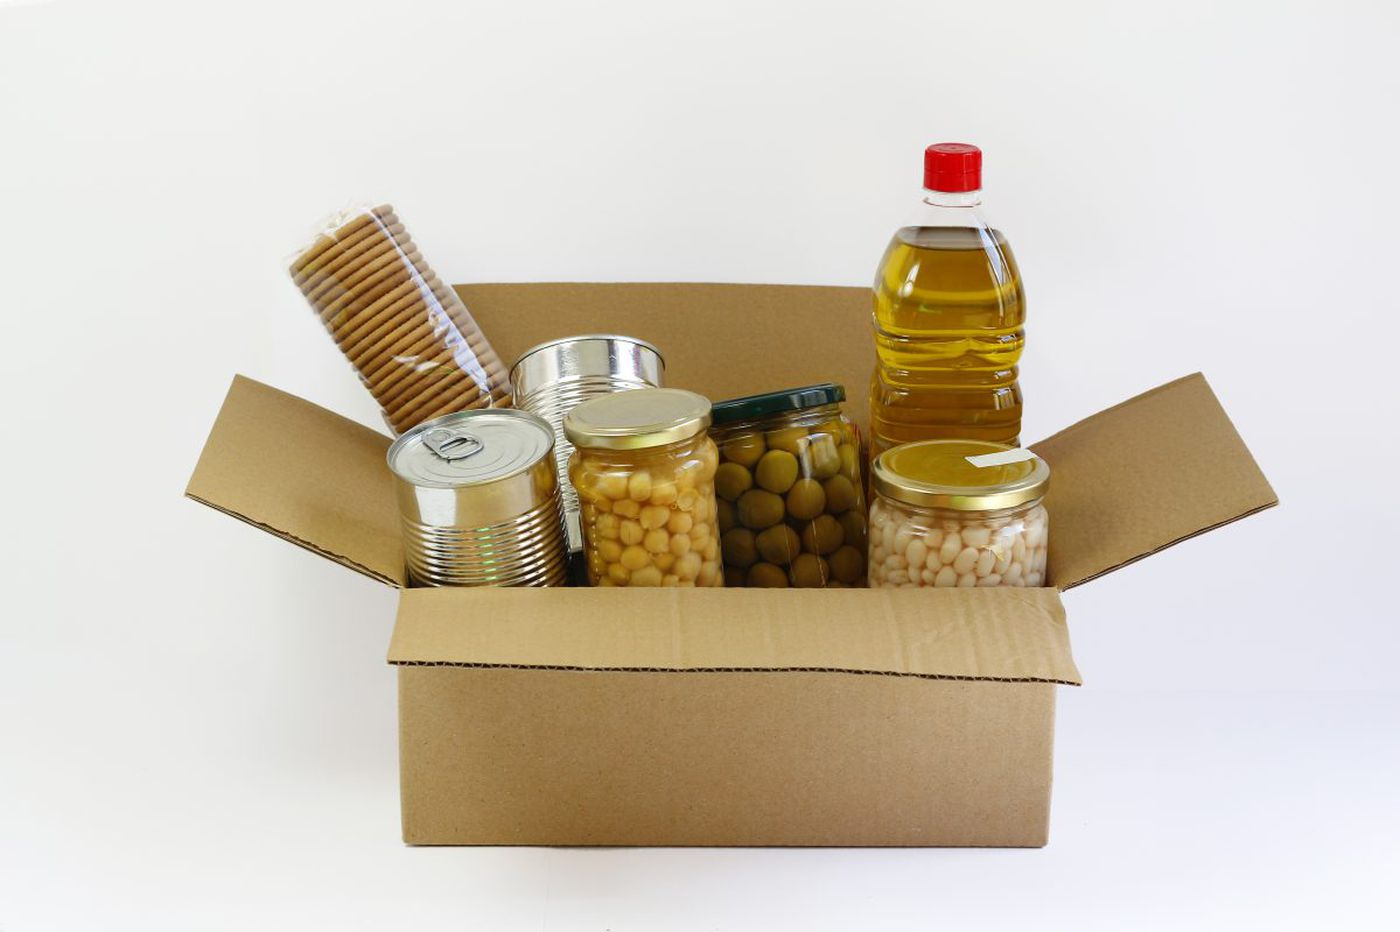 Take White House Harvest Boxes off the table | Opinion